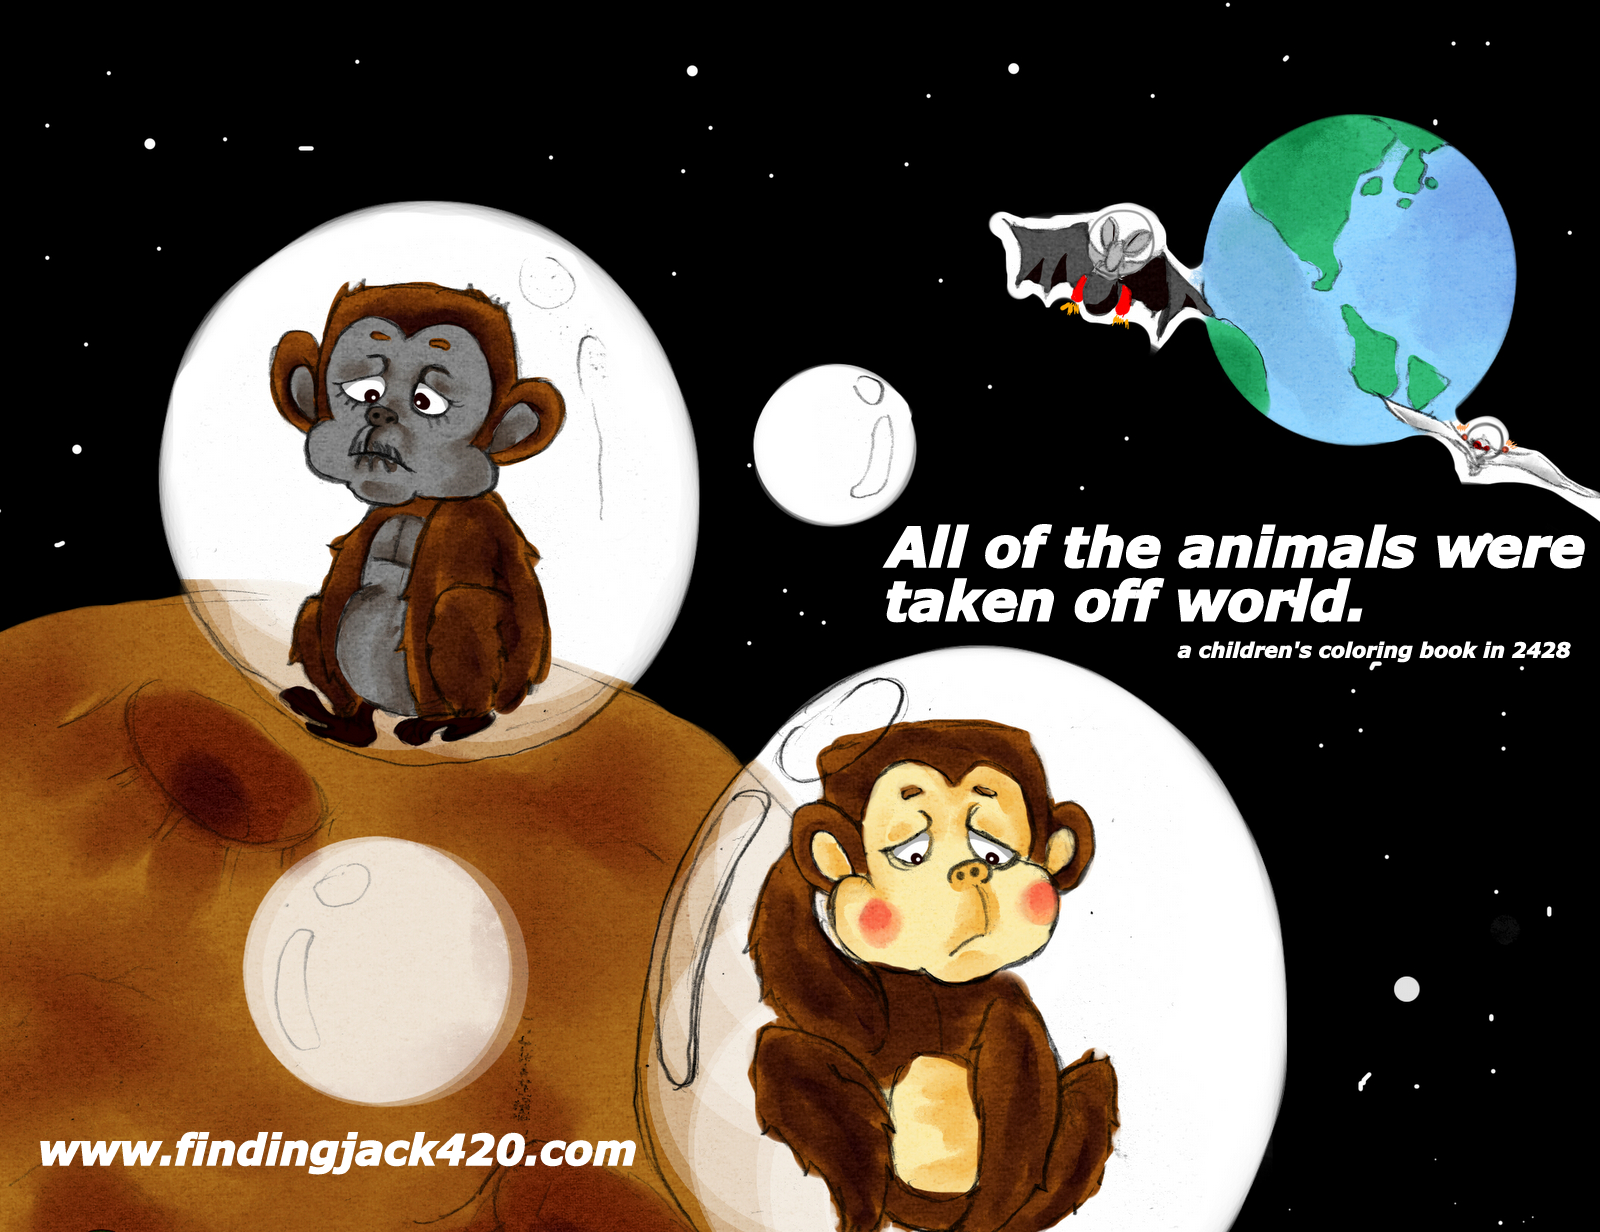 1-Happy_Bubbles_Lee and the Old Monkey on the Moon.jpg